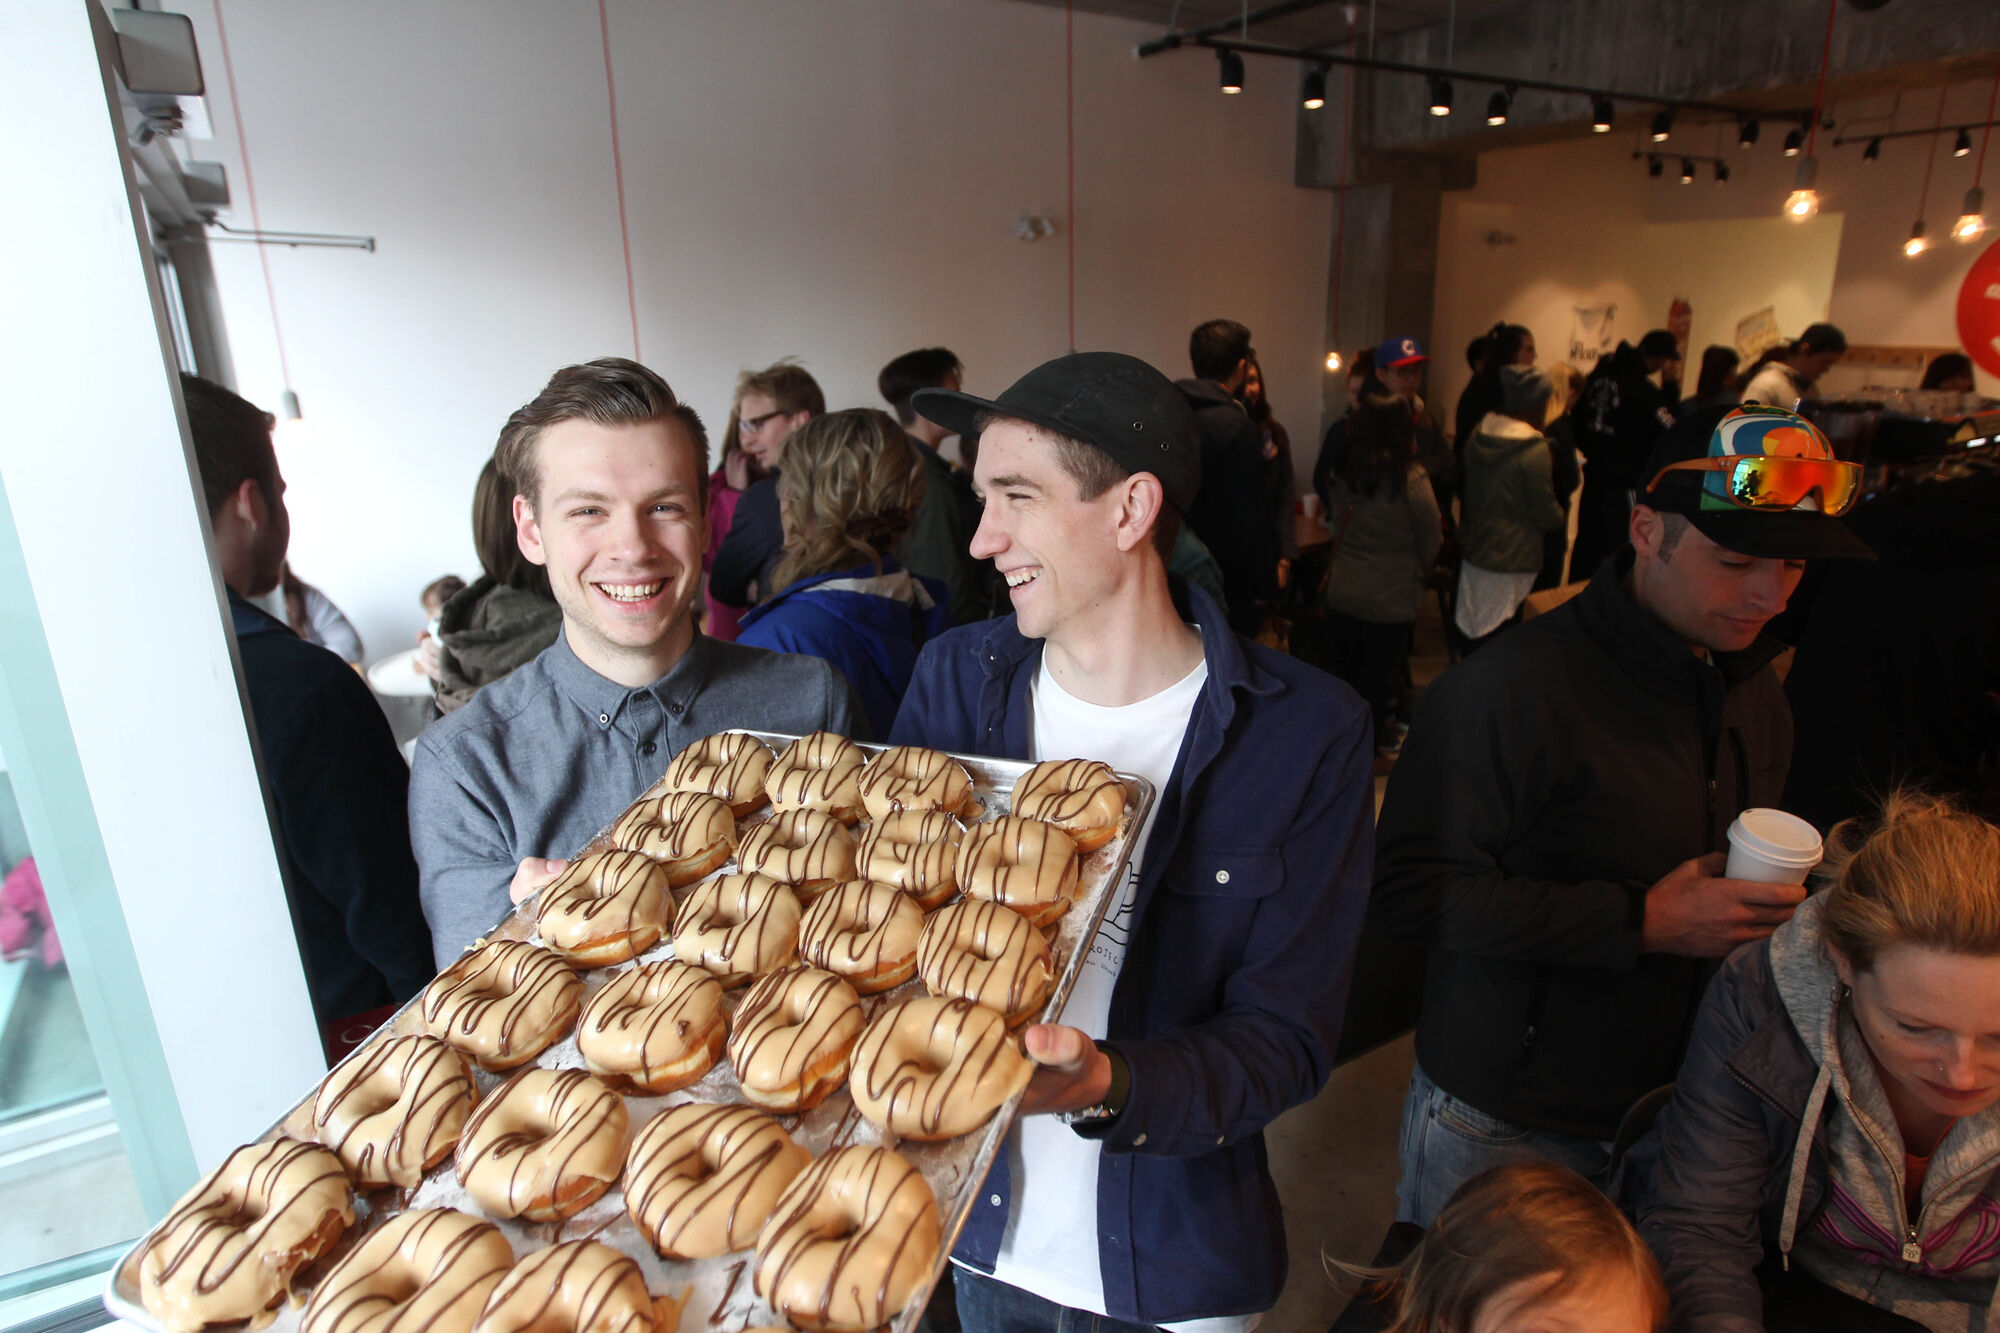 Winnipeg's first, dedicated gourmet doughnut shop owned by Brett (left) and Dylan Zahari - brothers who put the Bro in Bronuts.